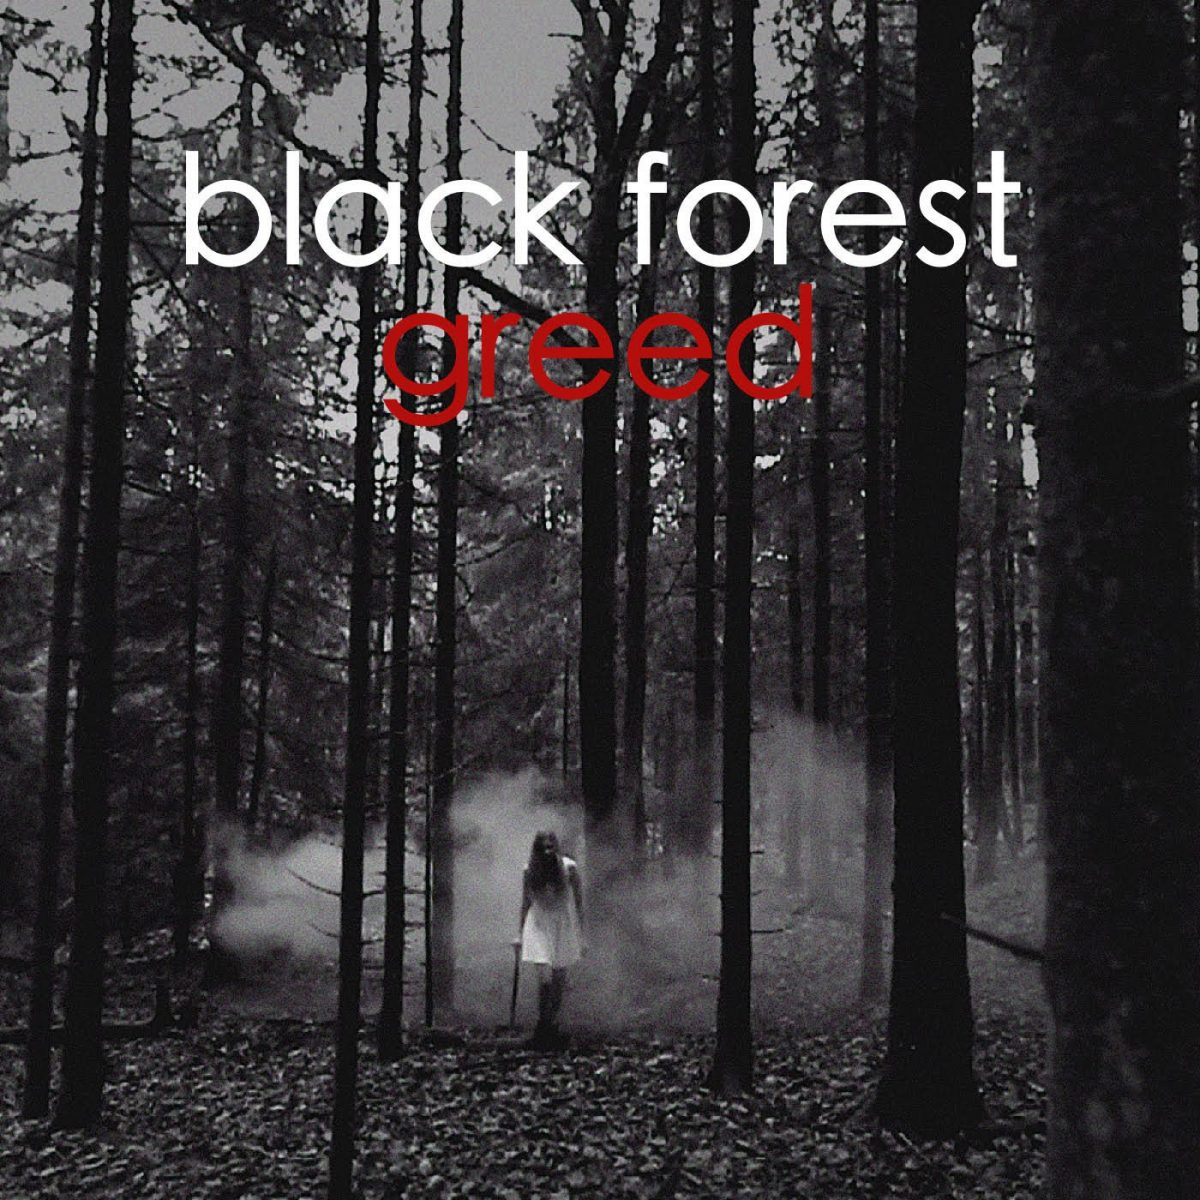 Exclusive video premiere newest single Black Forest - watch'Greed' here